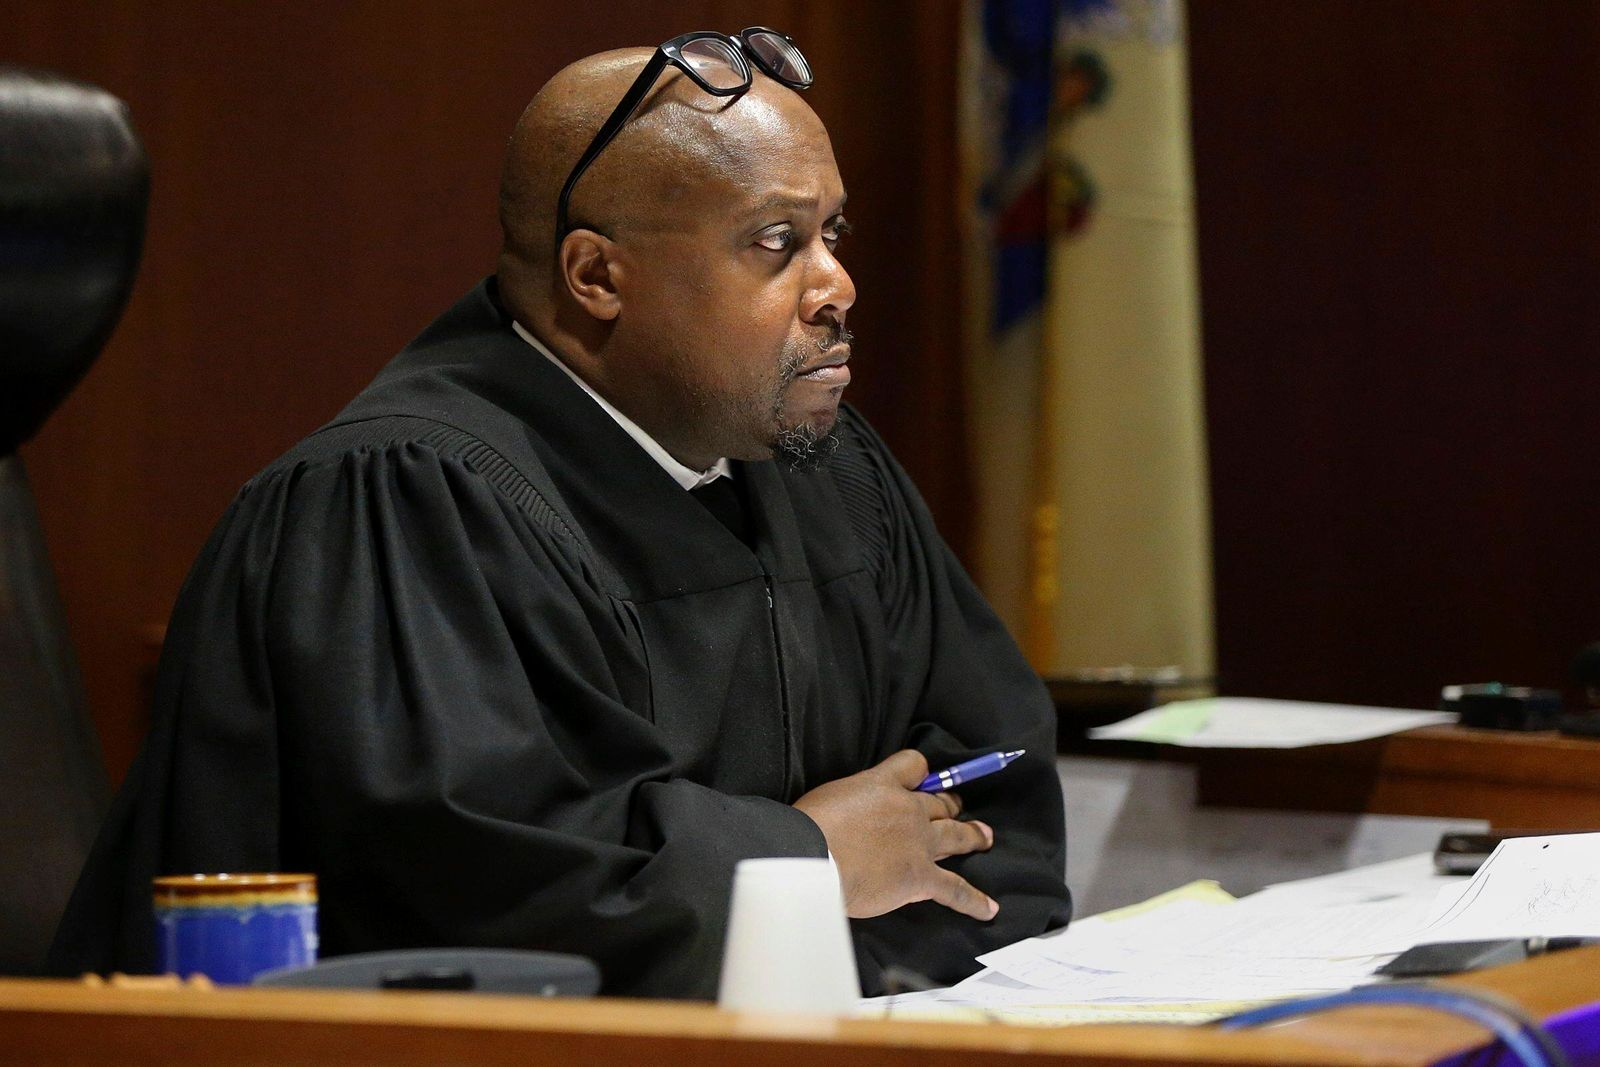 Judge Terrence Cook listens as Mark D'Amico pleads guilty to one count of misappropriating entrusted funds in Burlington County Superior Court in Mount Holly, N.J., on Friday, Dec. 6, 2019. (Tim Tai/The Philadelphia Inquirer via AP)